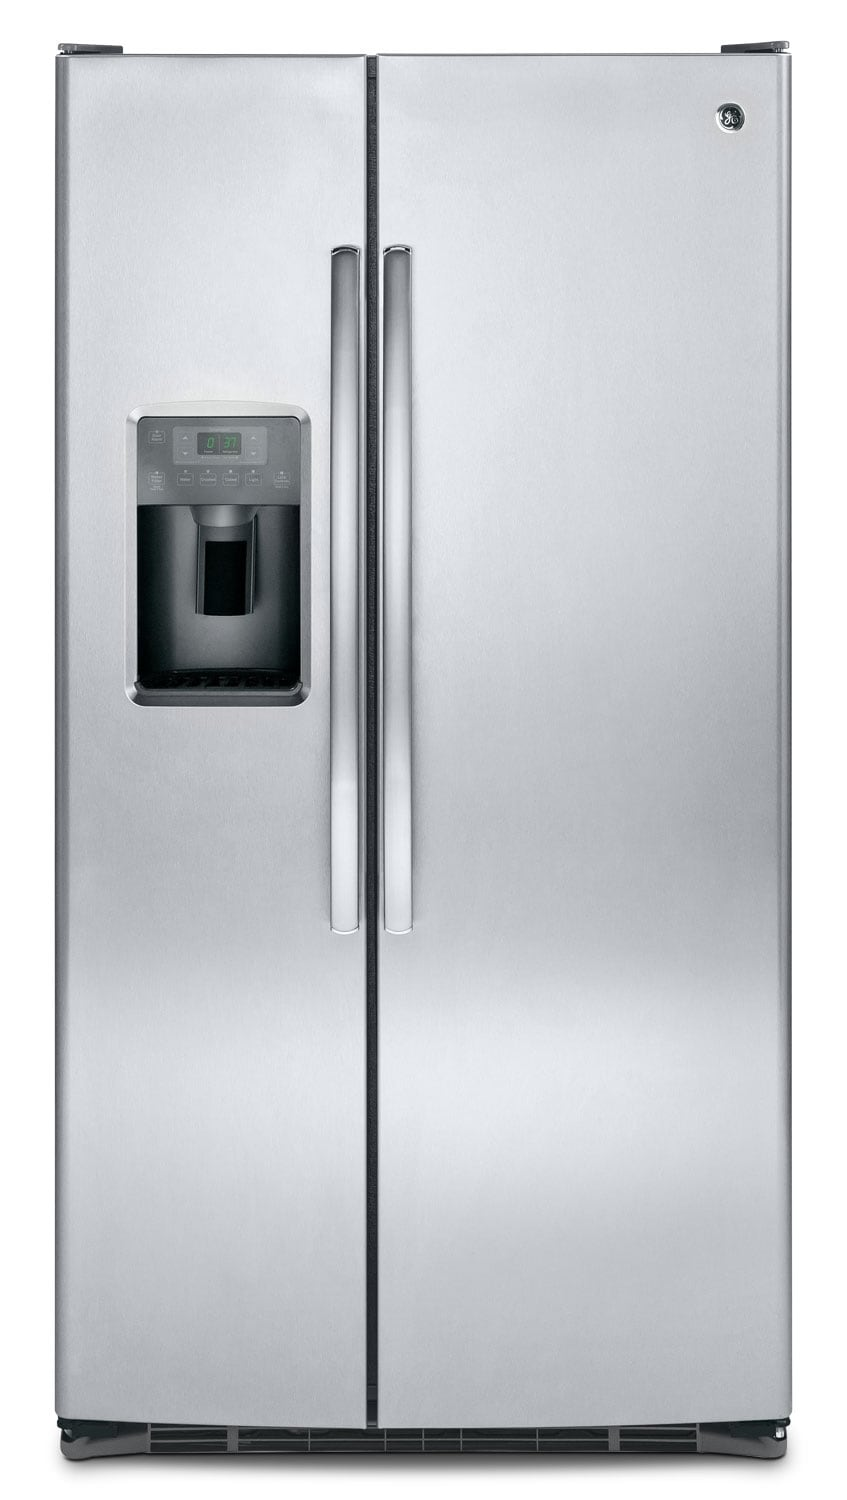 Refrigerators and Freezers - GE 25.4 Cu. Ft. Side-By-Side Refrigerator – GSE25GSHSS